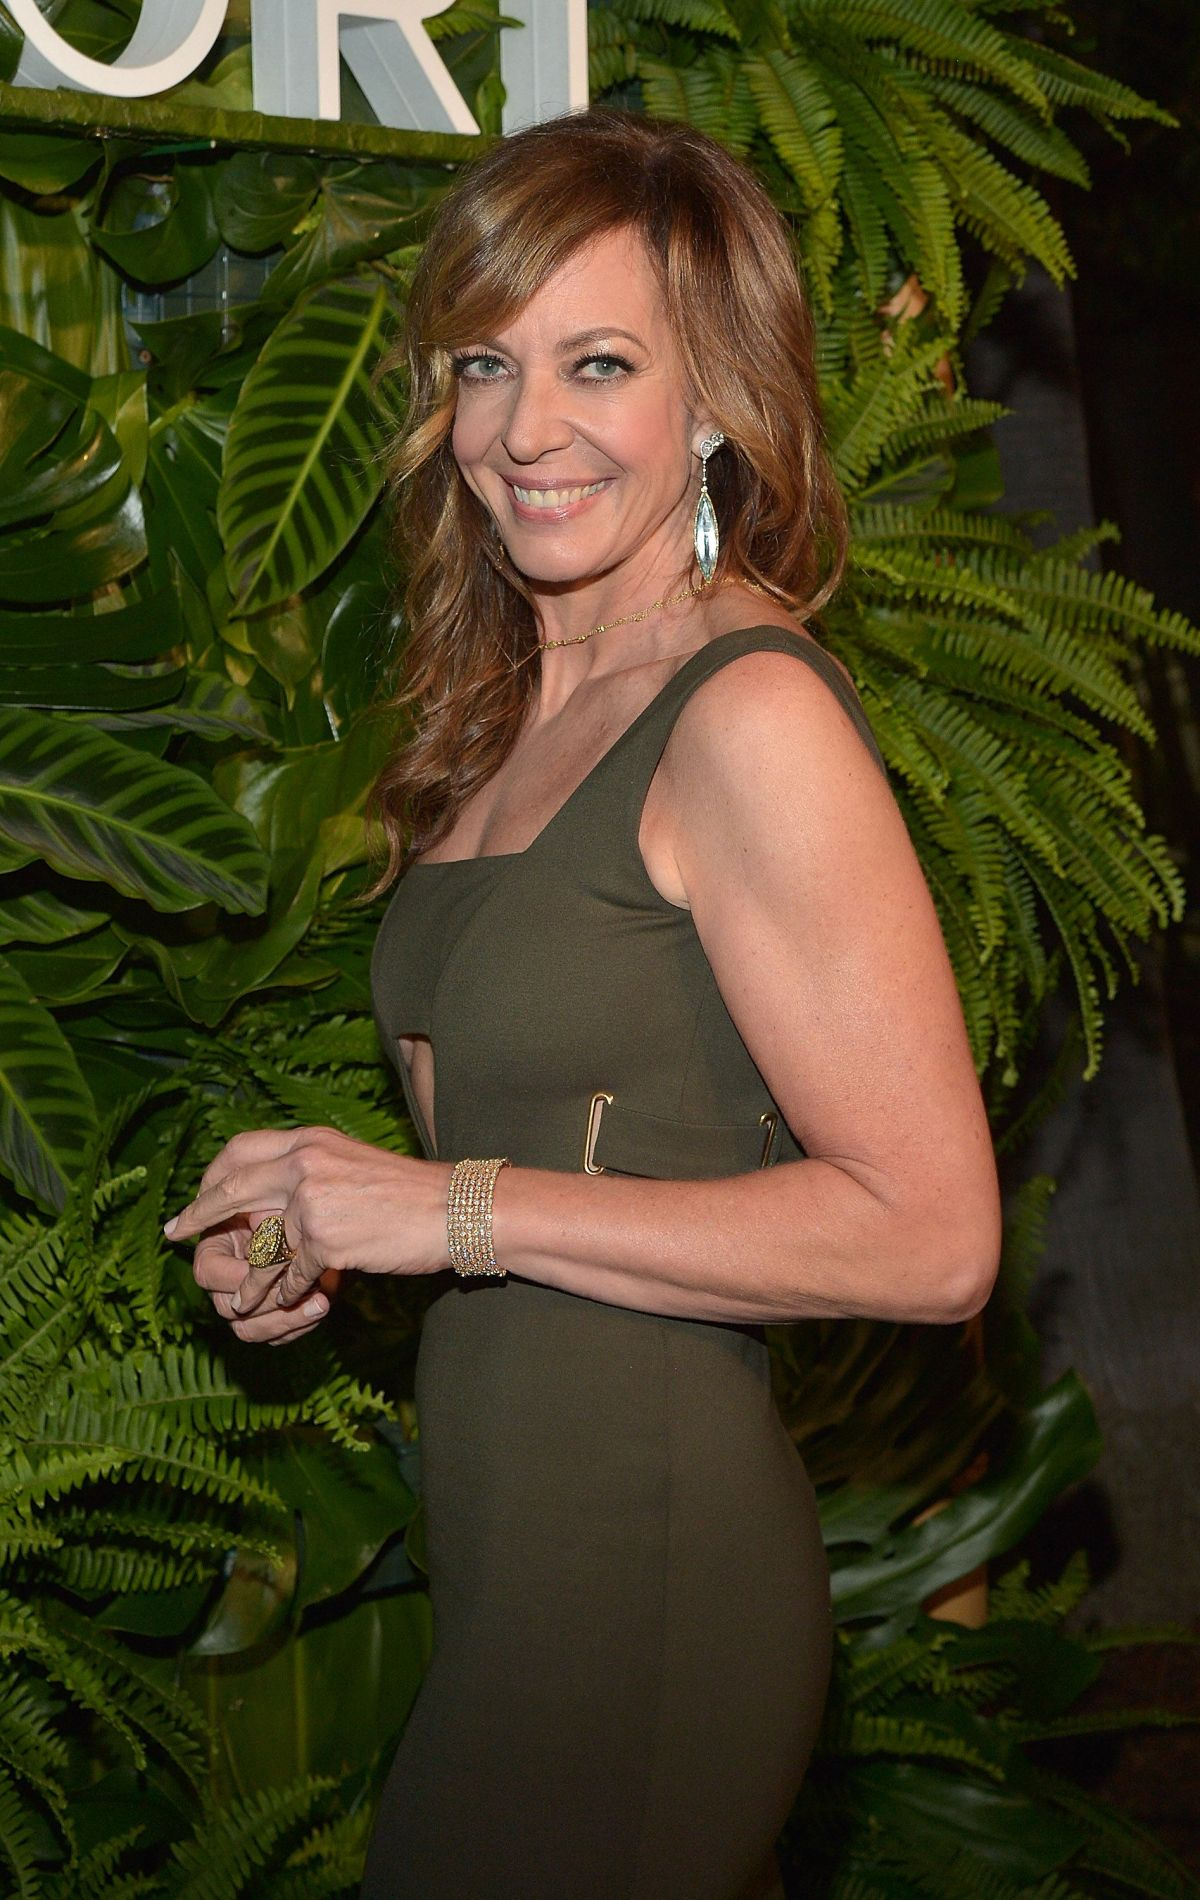 ALLISON JANNEY at Tacori Presents Riviera Event in Hollywood 10/06/2015